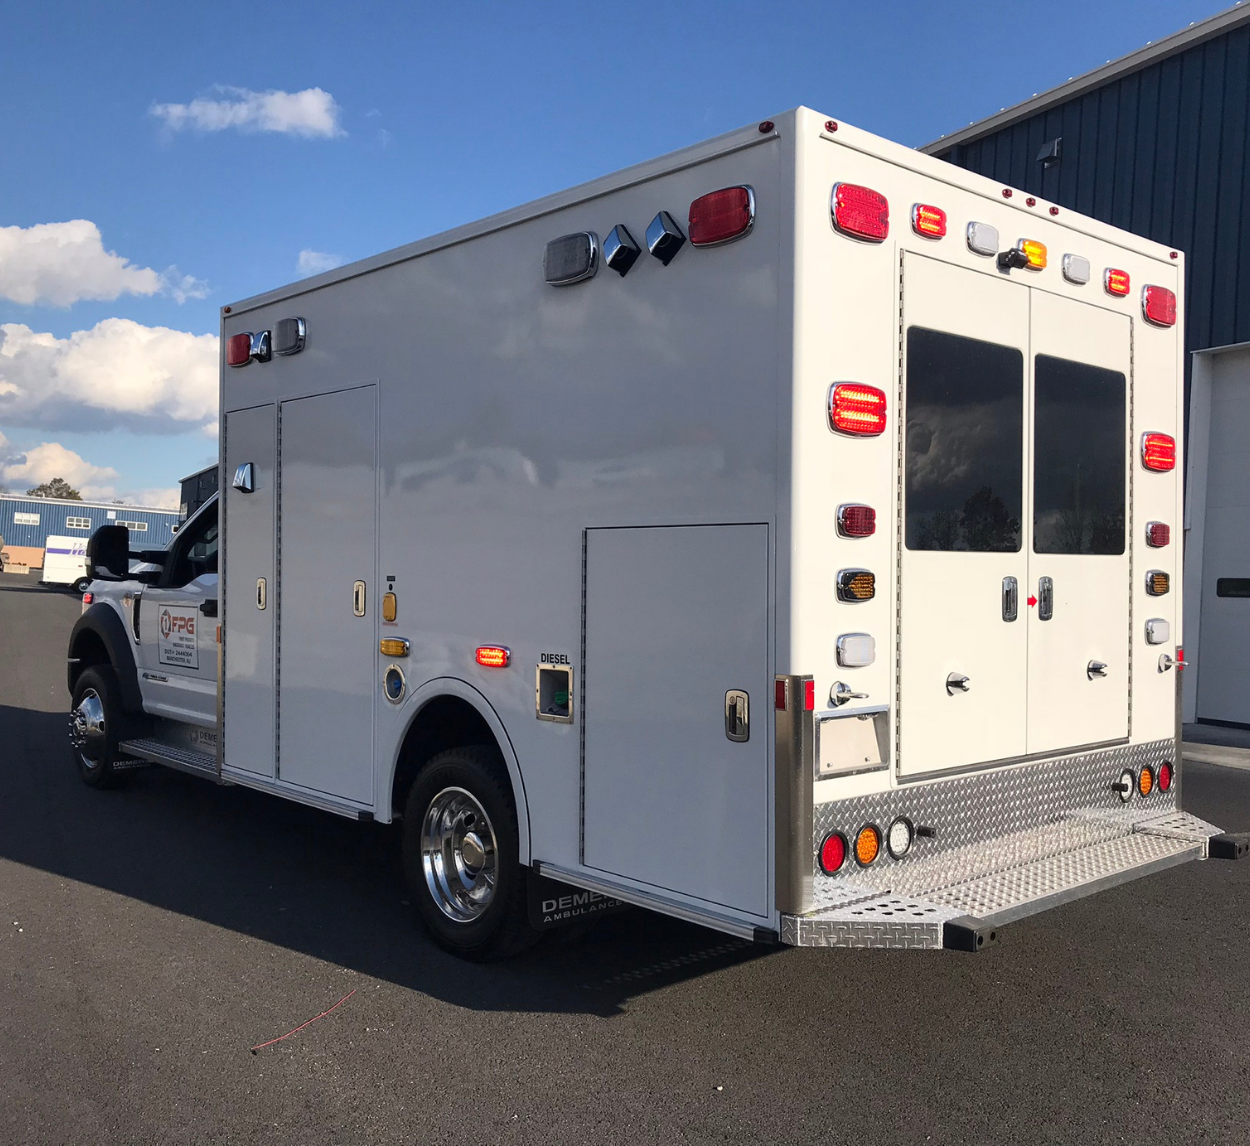 First Priority Emergency Vehicles Demers MXP150 Ambulance Demo